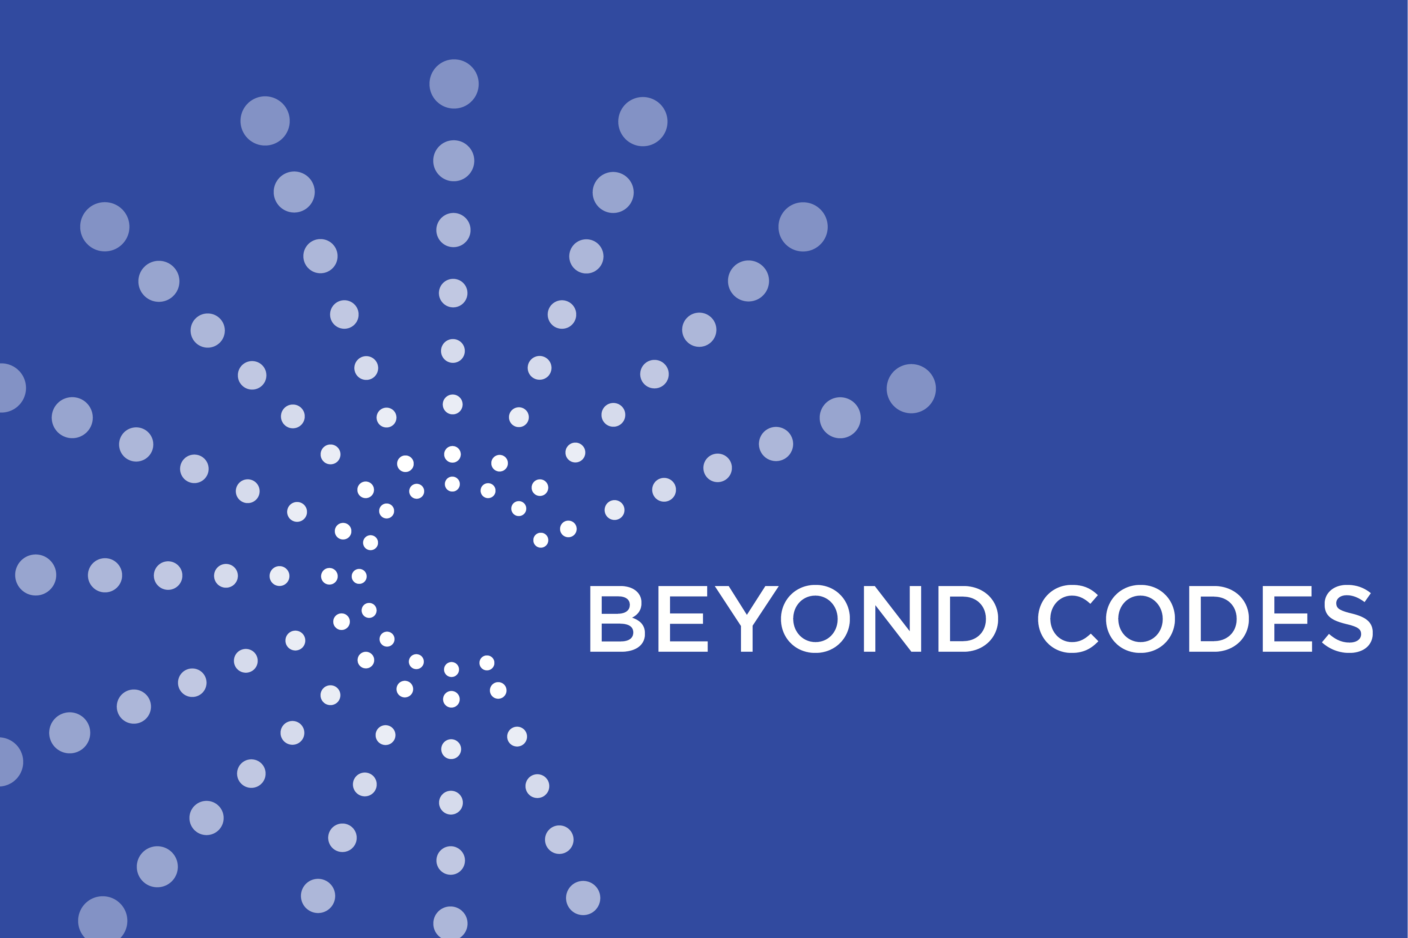 Special thanks to our 2015 Beyond Codes Series partners! Thank you for all of your support!